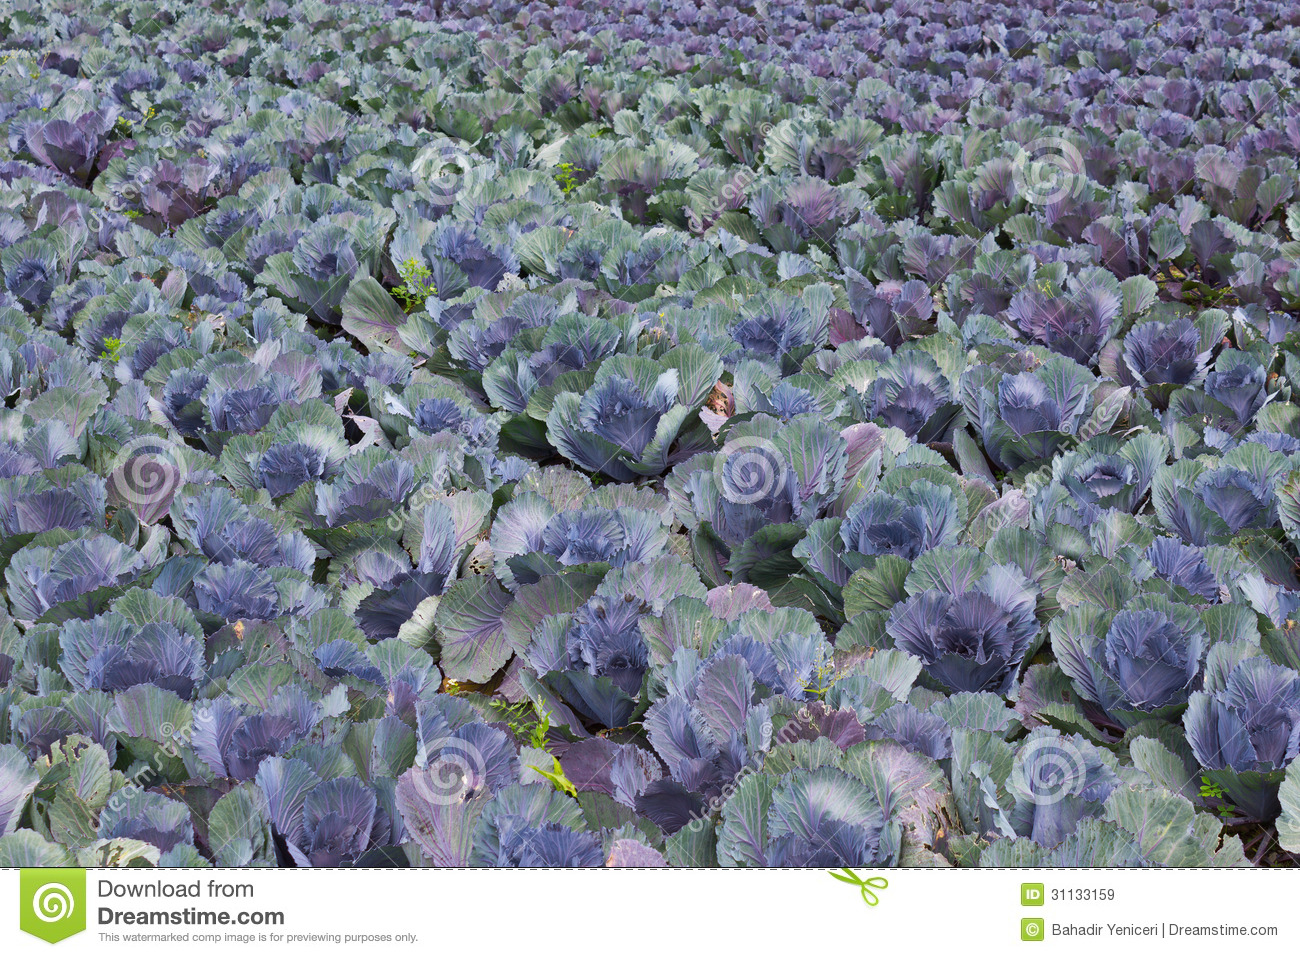 32  Great Red Cabbage for Red Cabbage Farm  599kxo